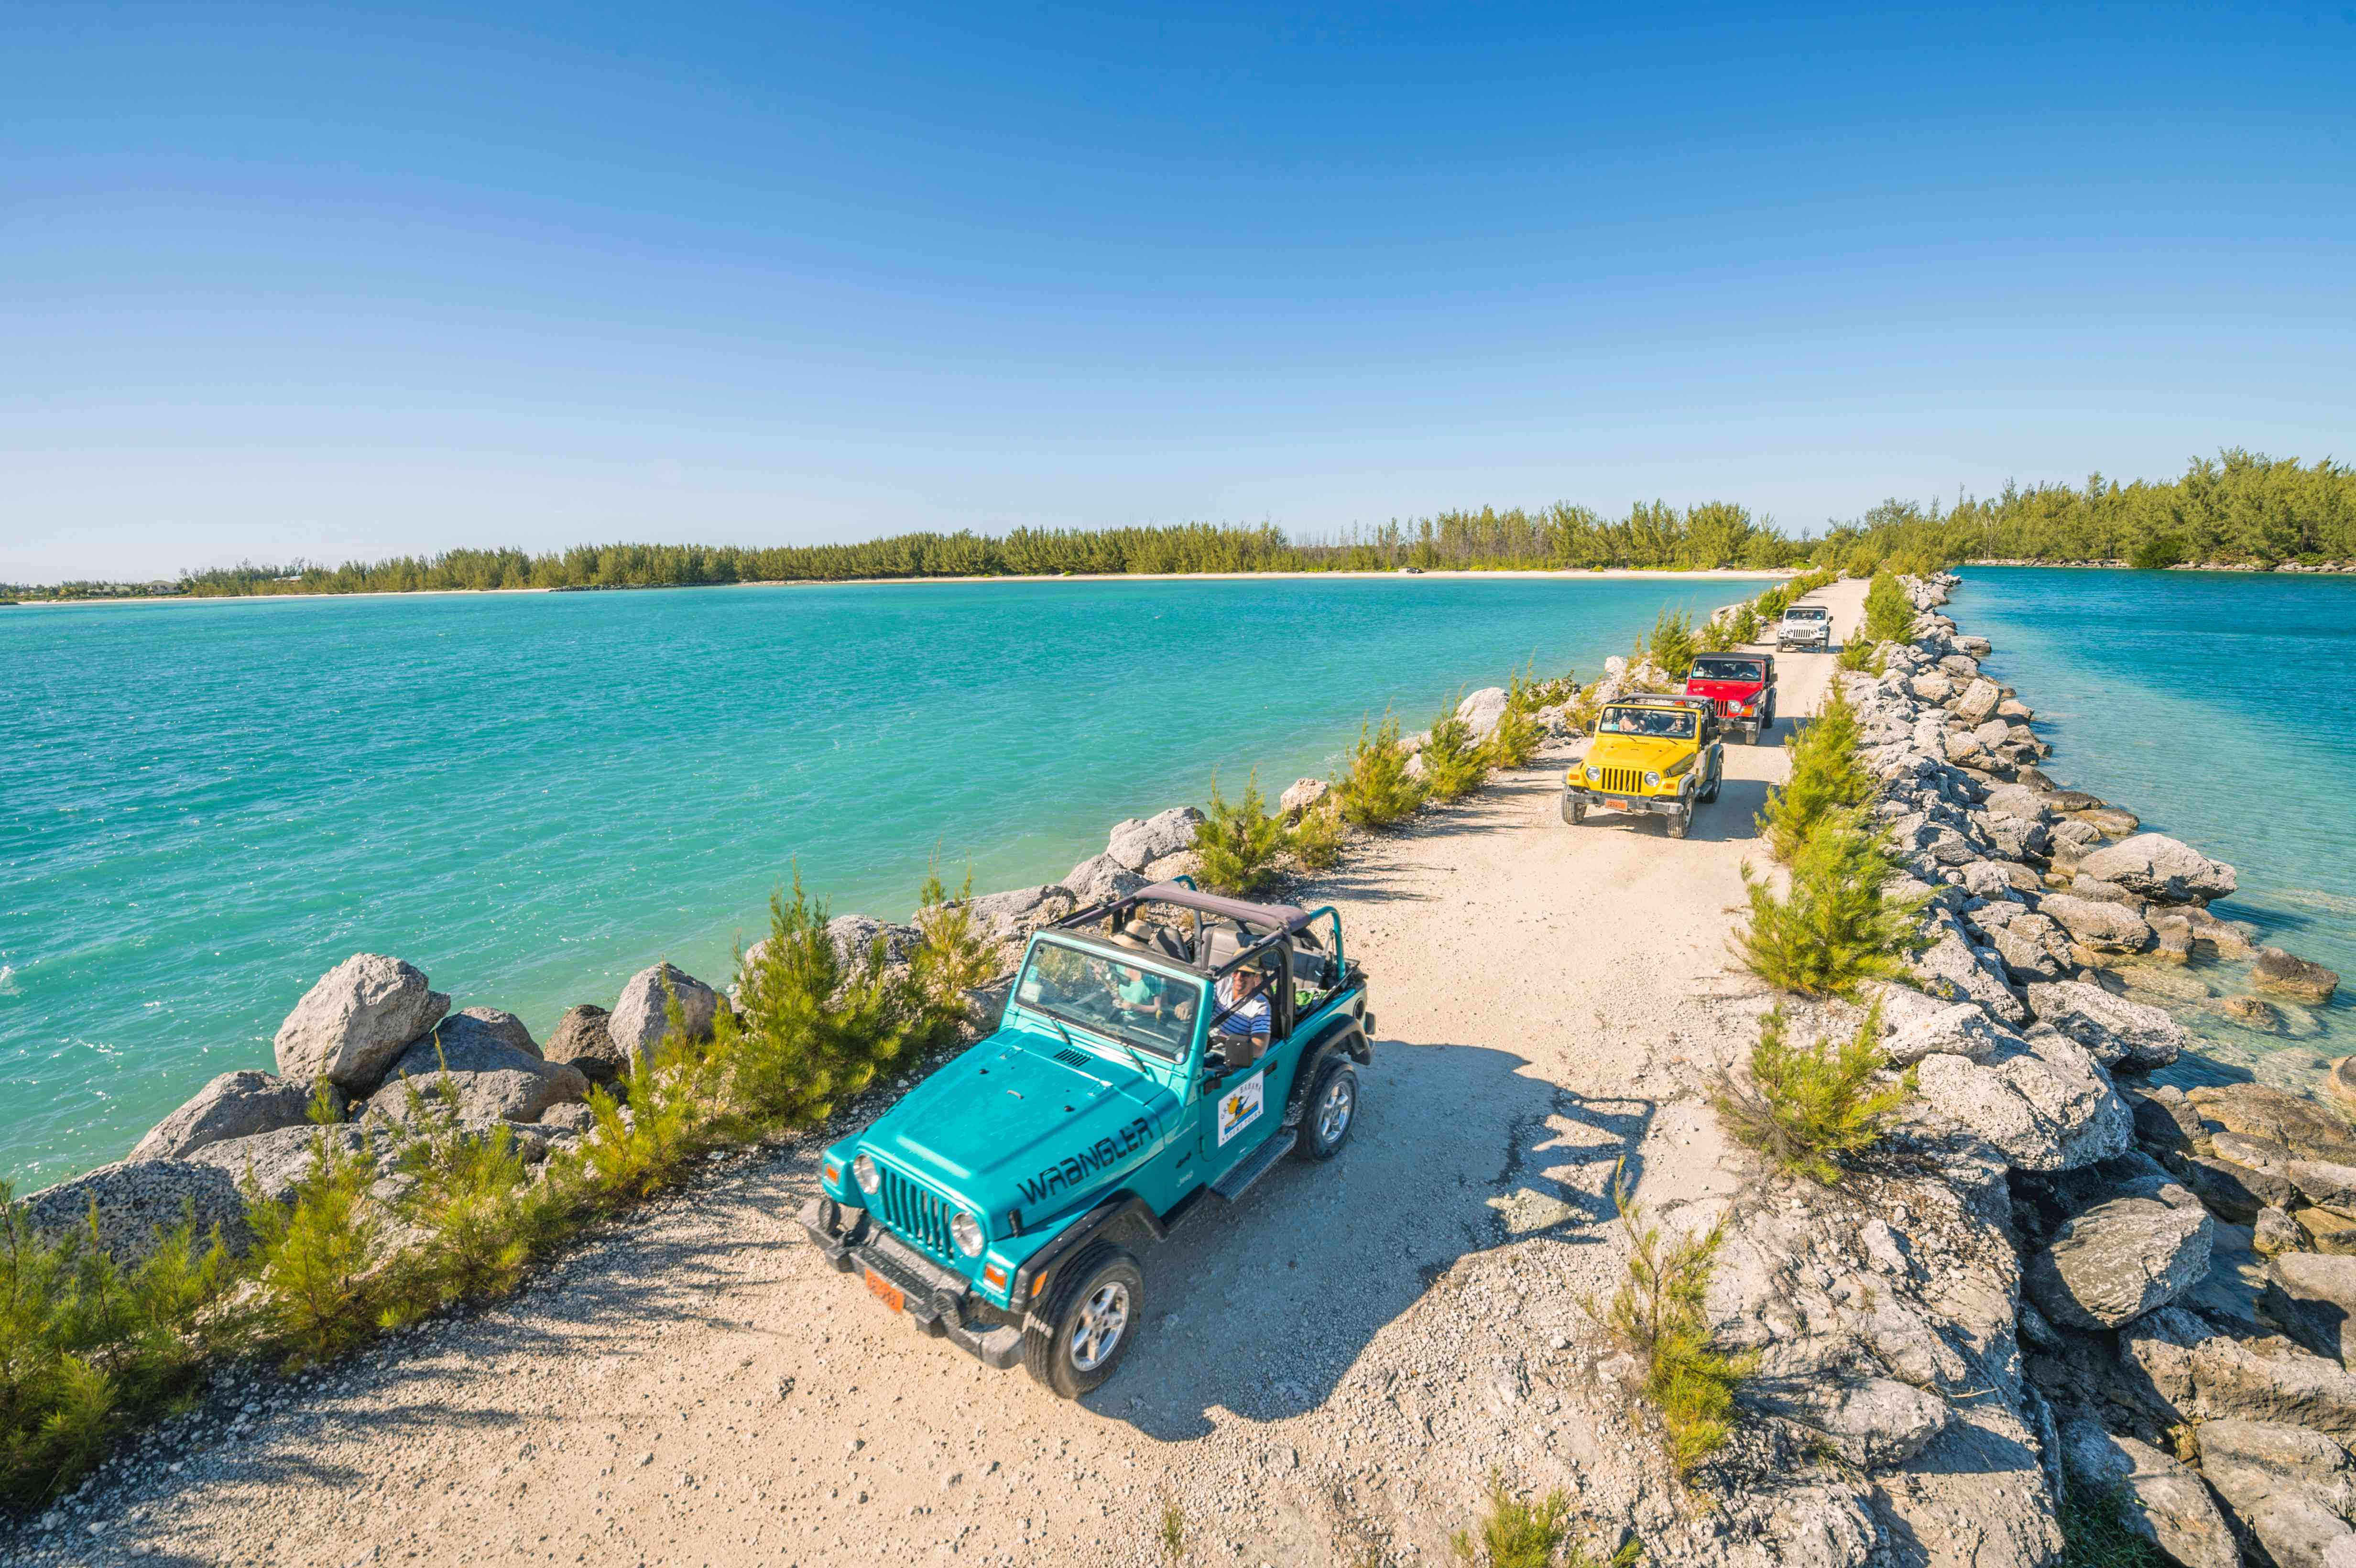 Colorful jeeps driving along a sandy road with water on both sides on Freeport, the Bahamas